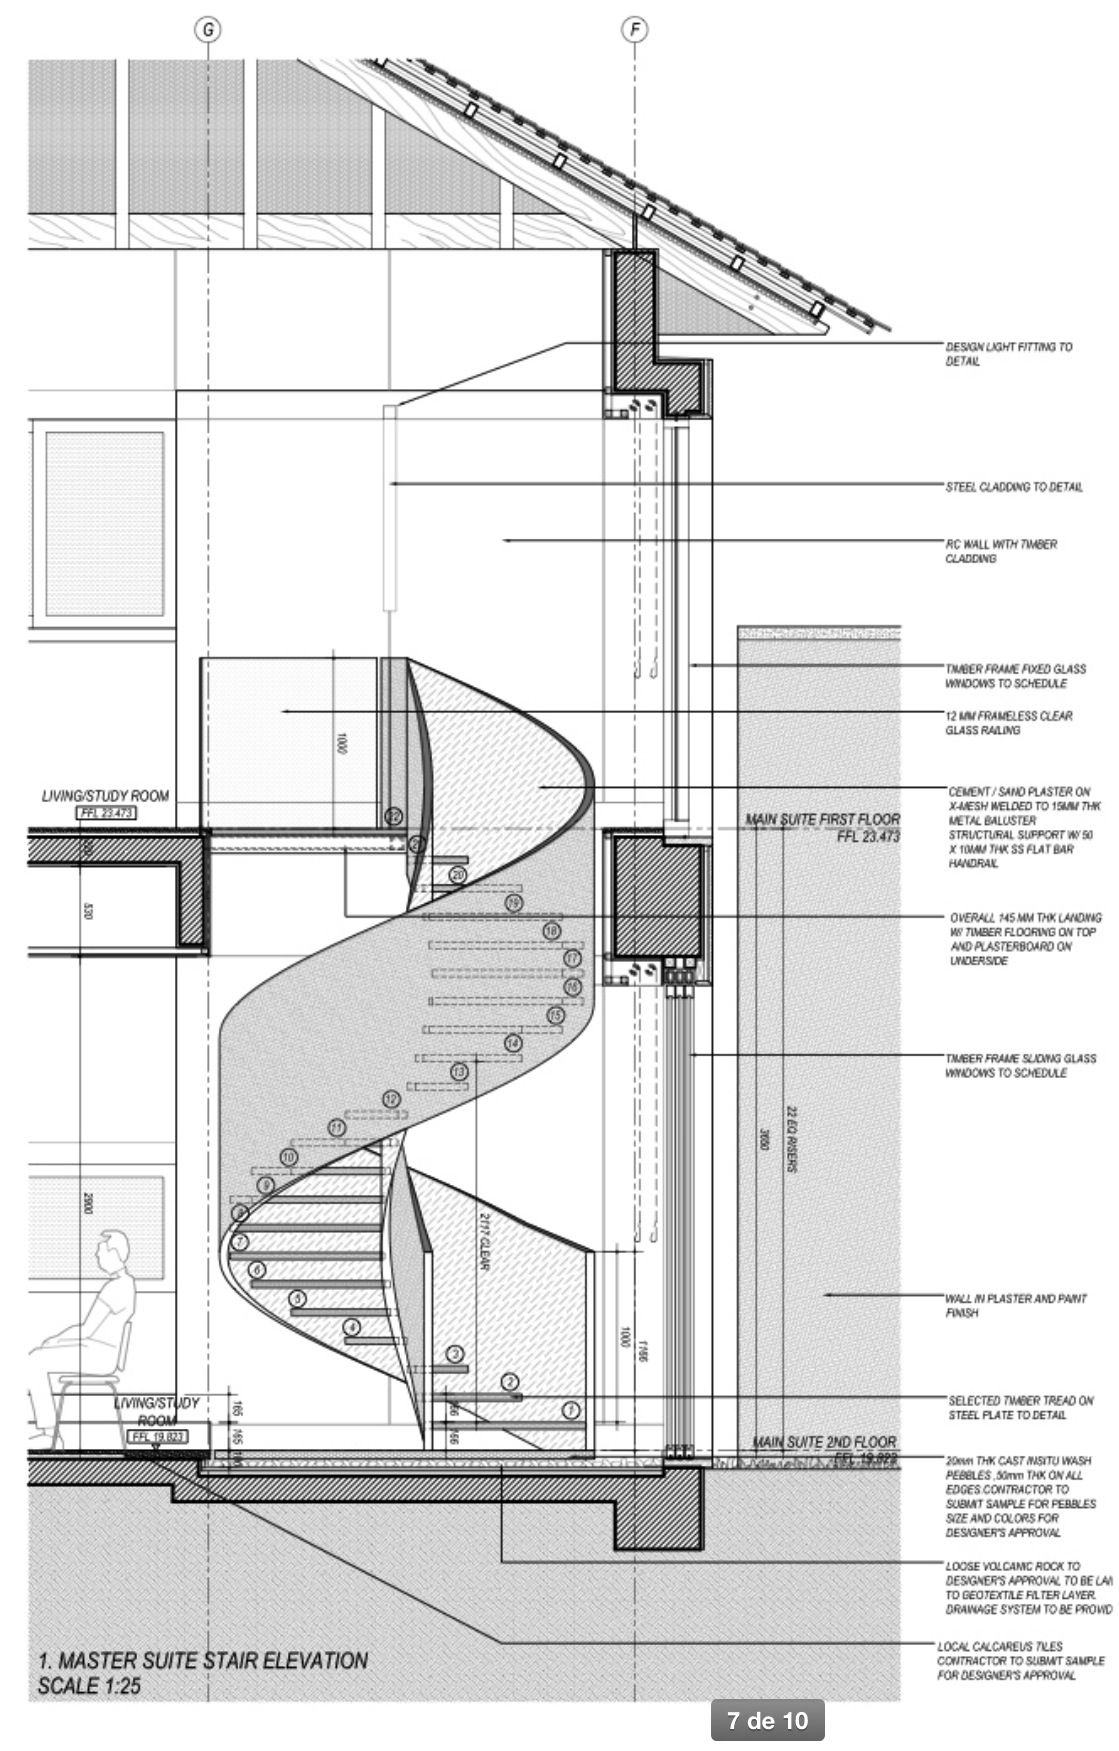 Stairs spiral stair bedmar shi drawn by me Spiral stair cad